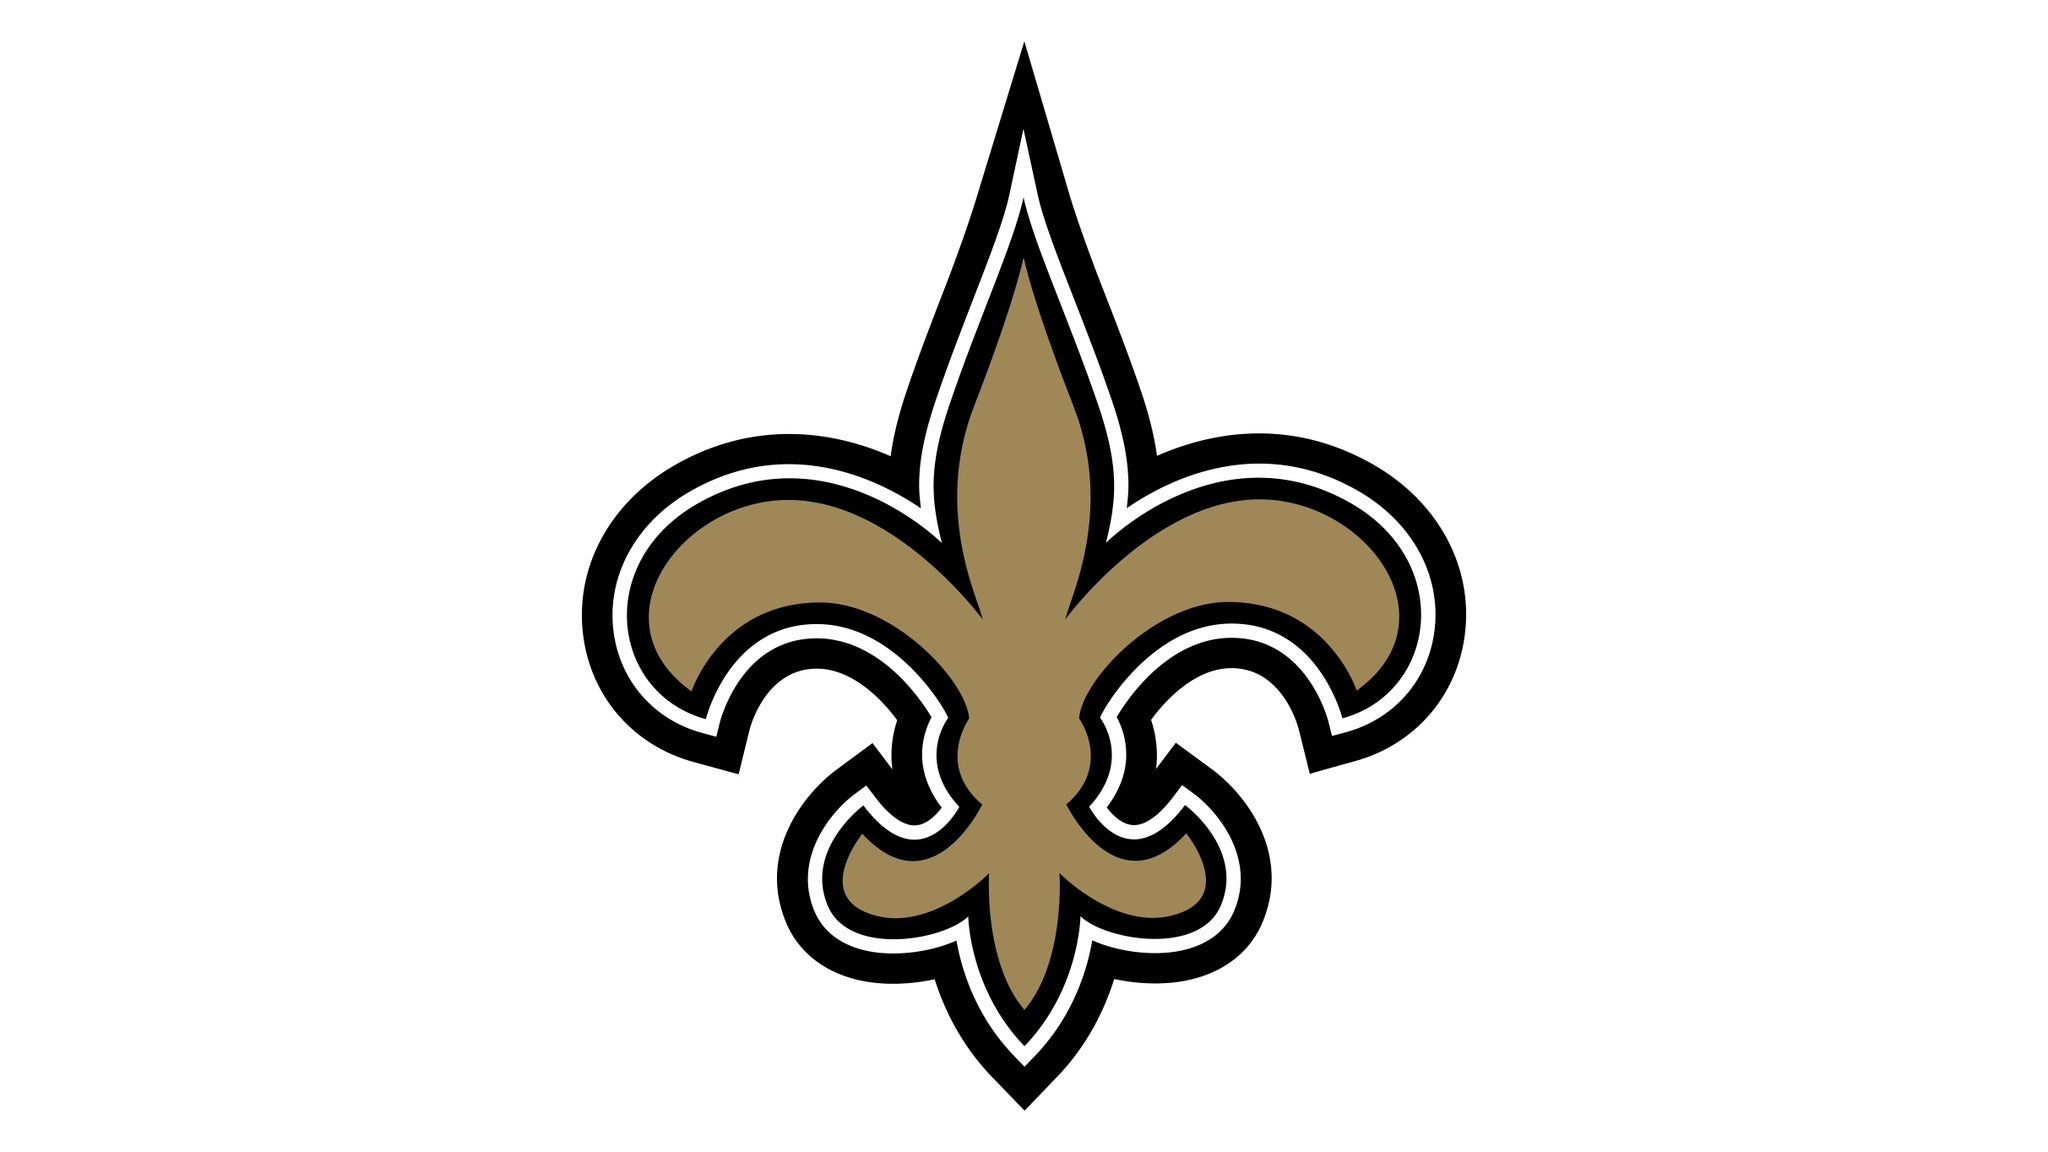 New Orleans Saints vs. New York Jets